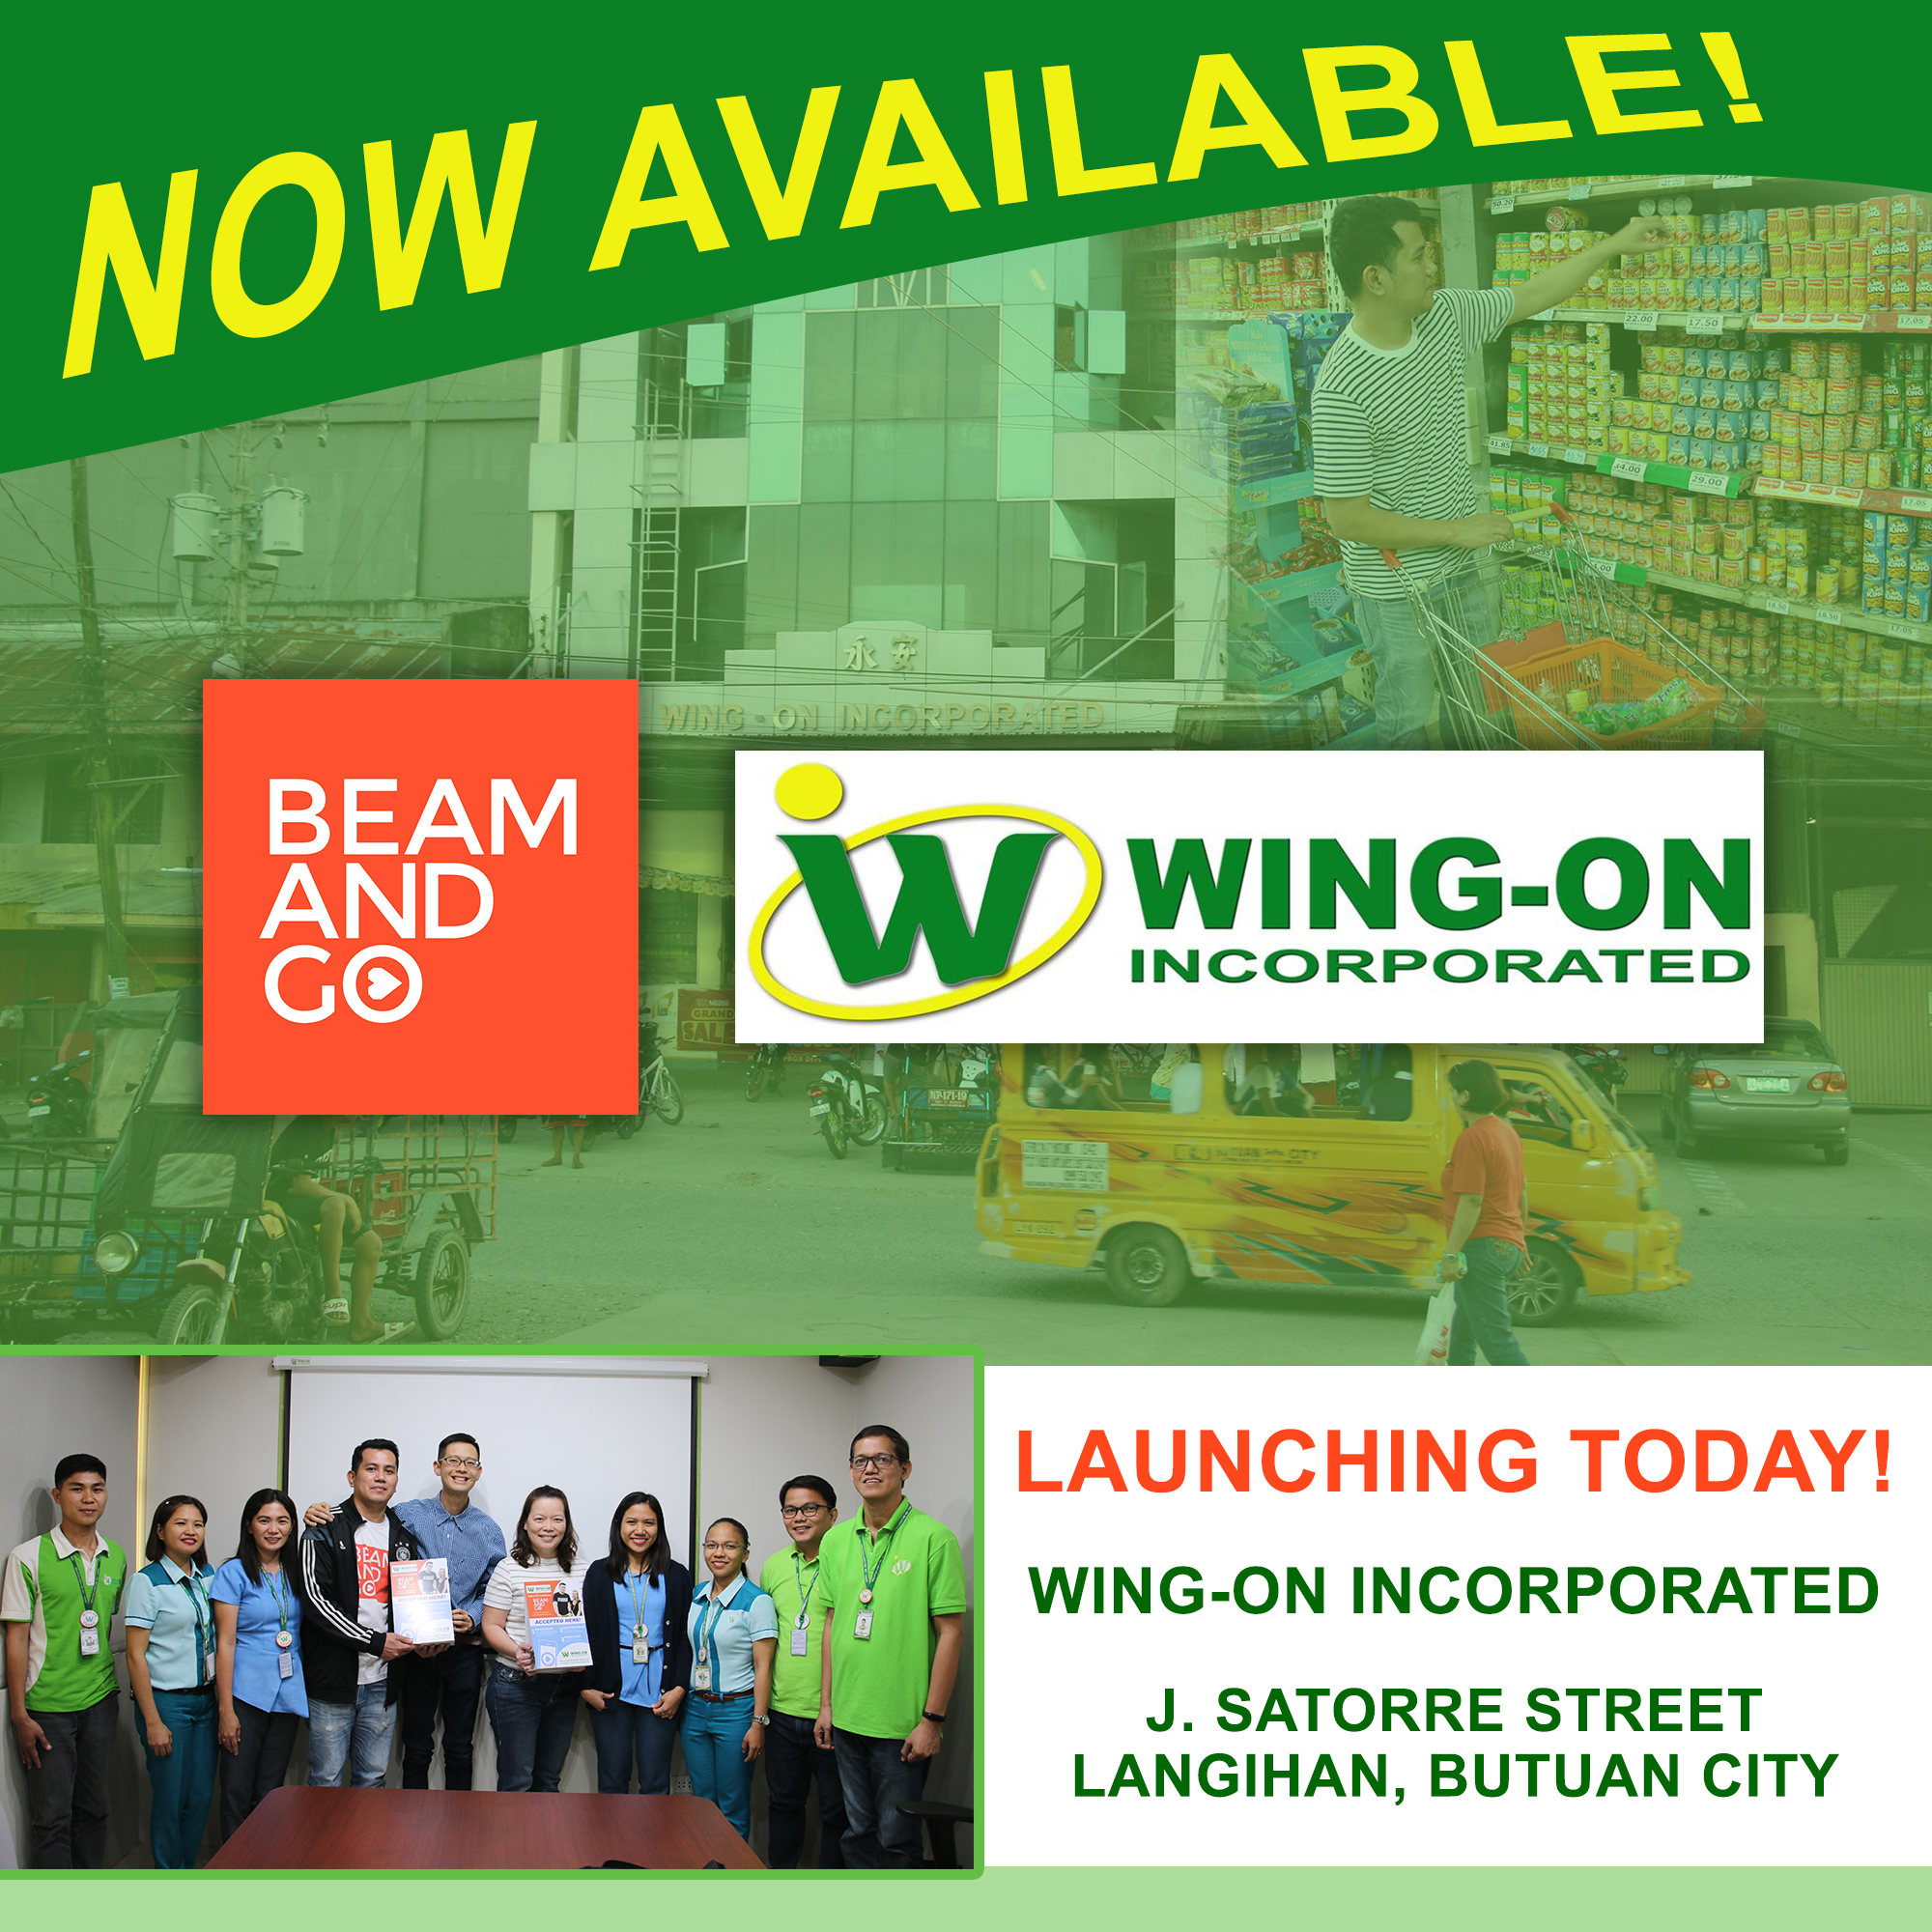 Wing-on Inc - Launching Today